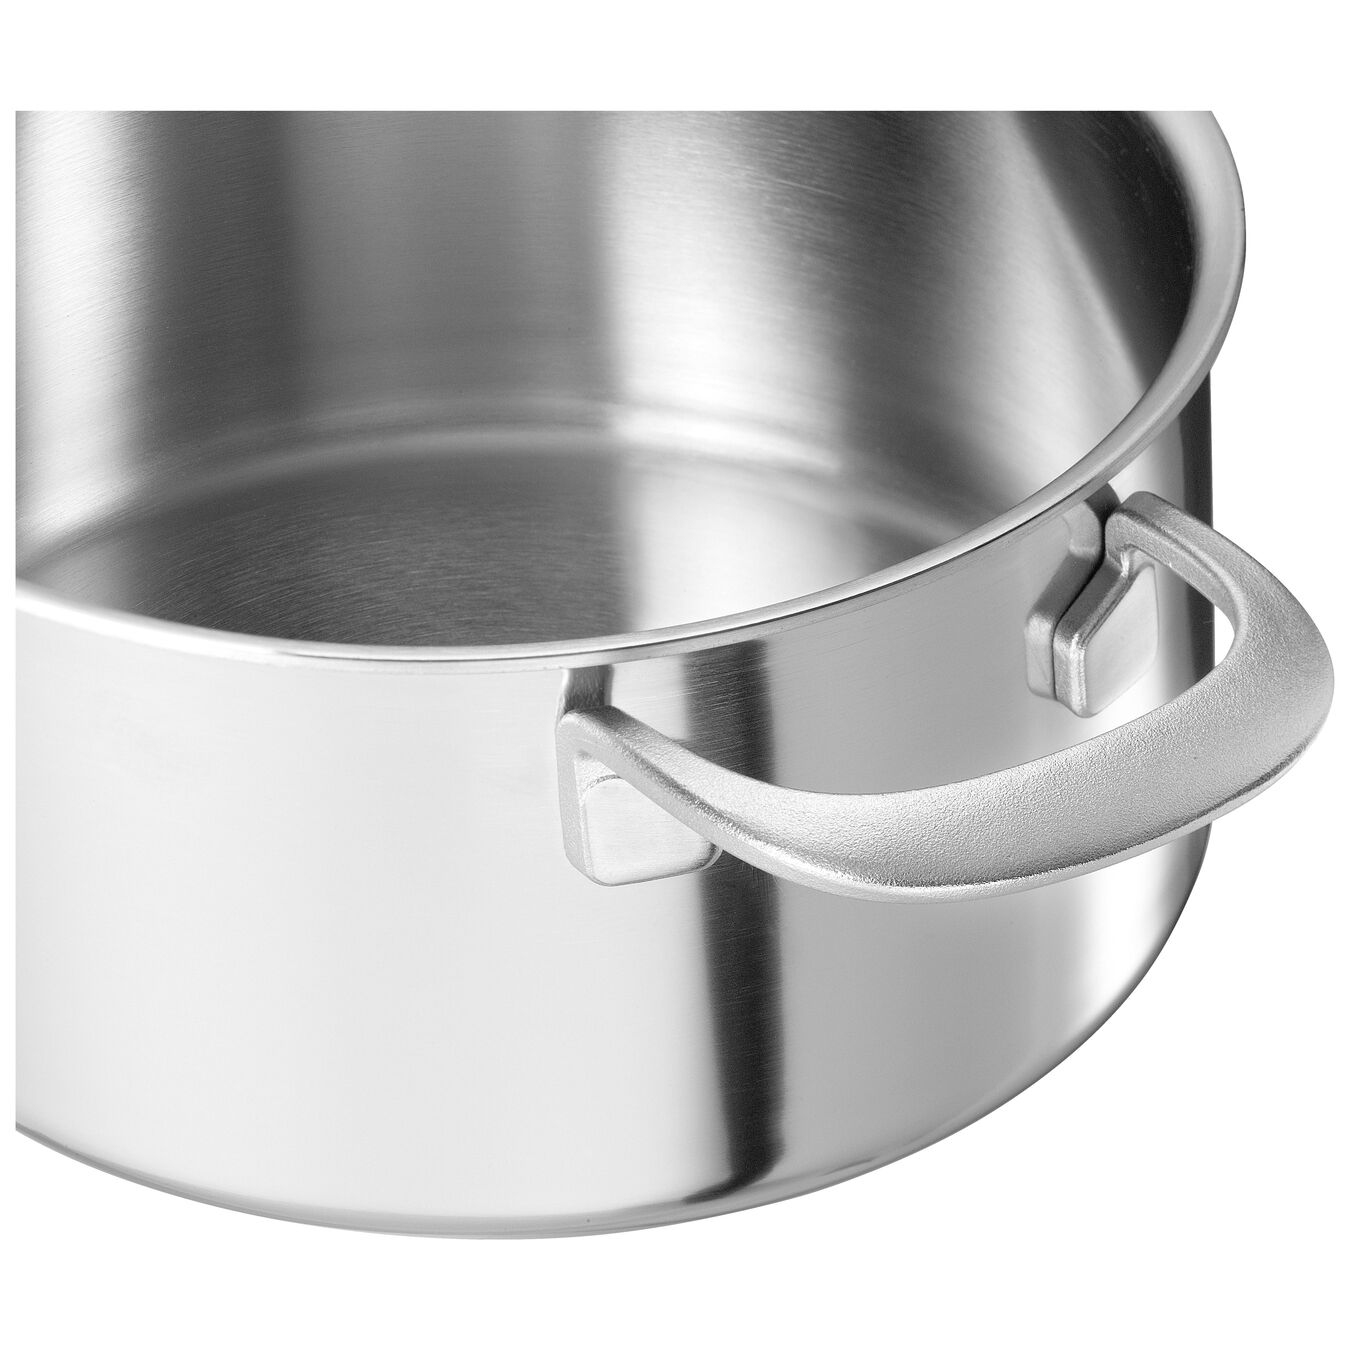 5,25 l 18/10 Stainless Steel Faitout,,large 4